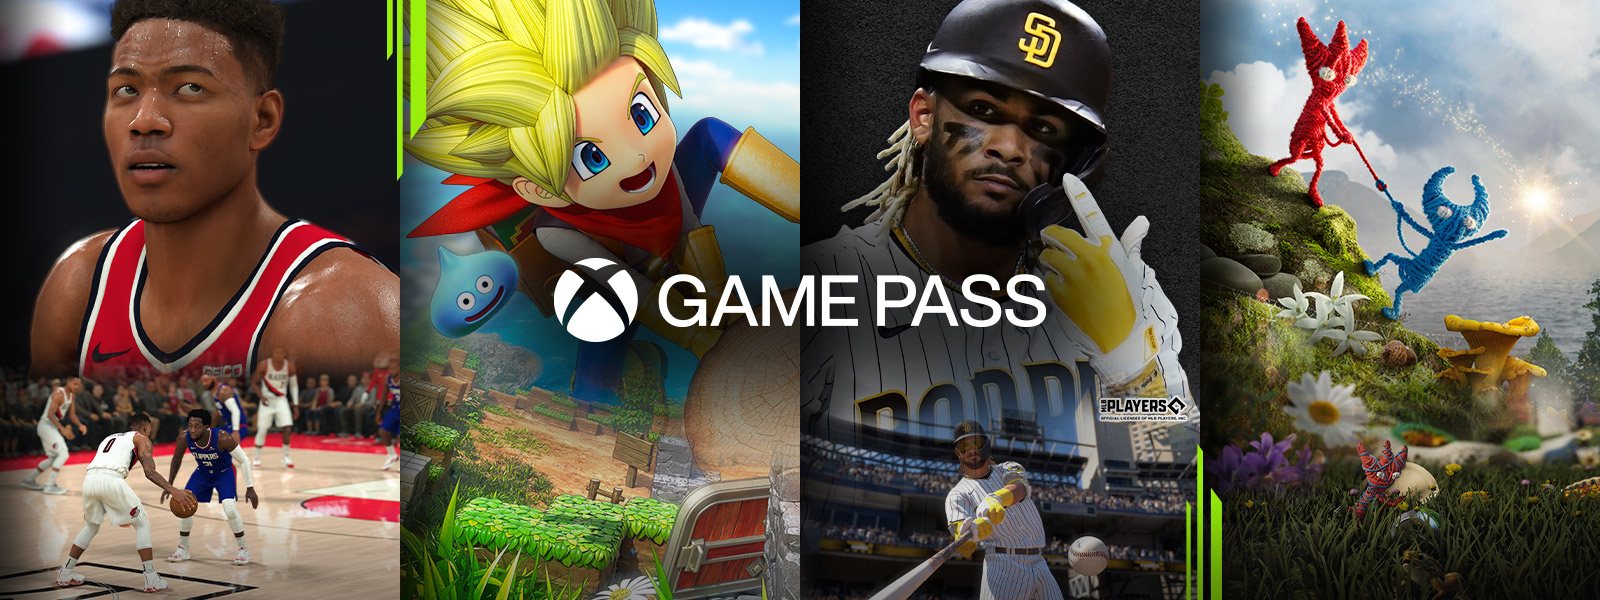 Game characters from games available through Xbox Game Pass Ultimate, including NBA 2K21 and MLB® The Show™ 21.